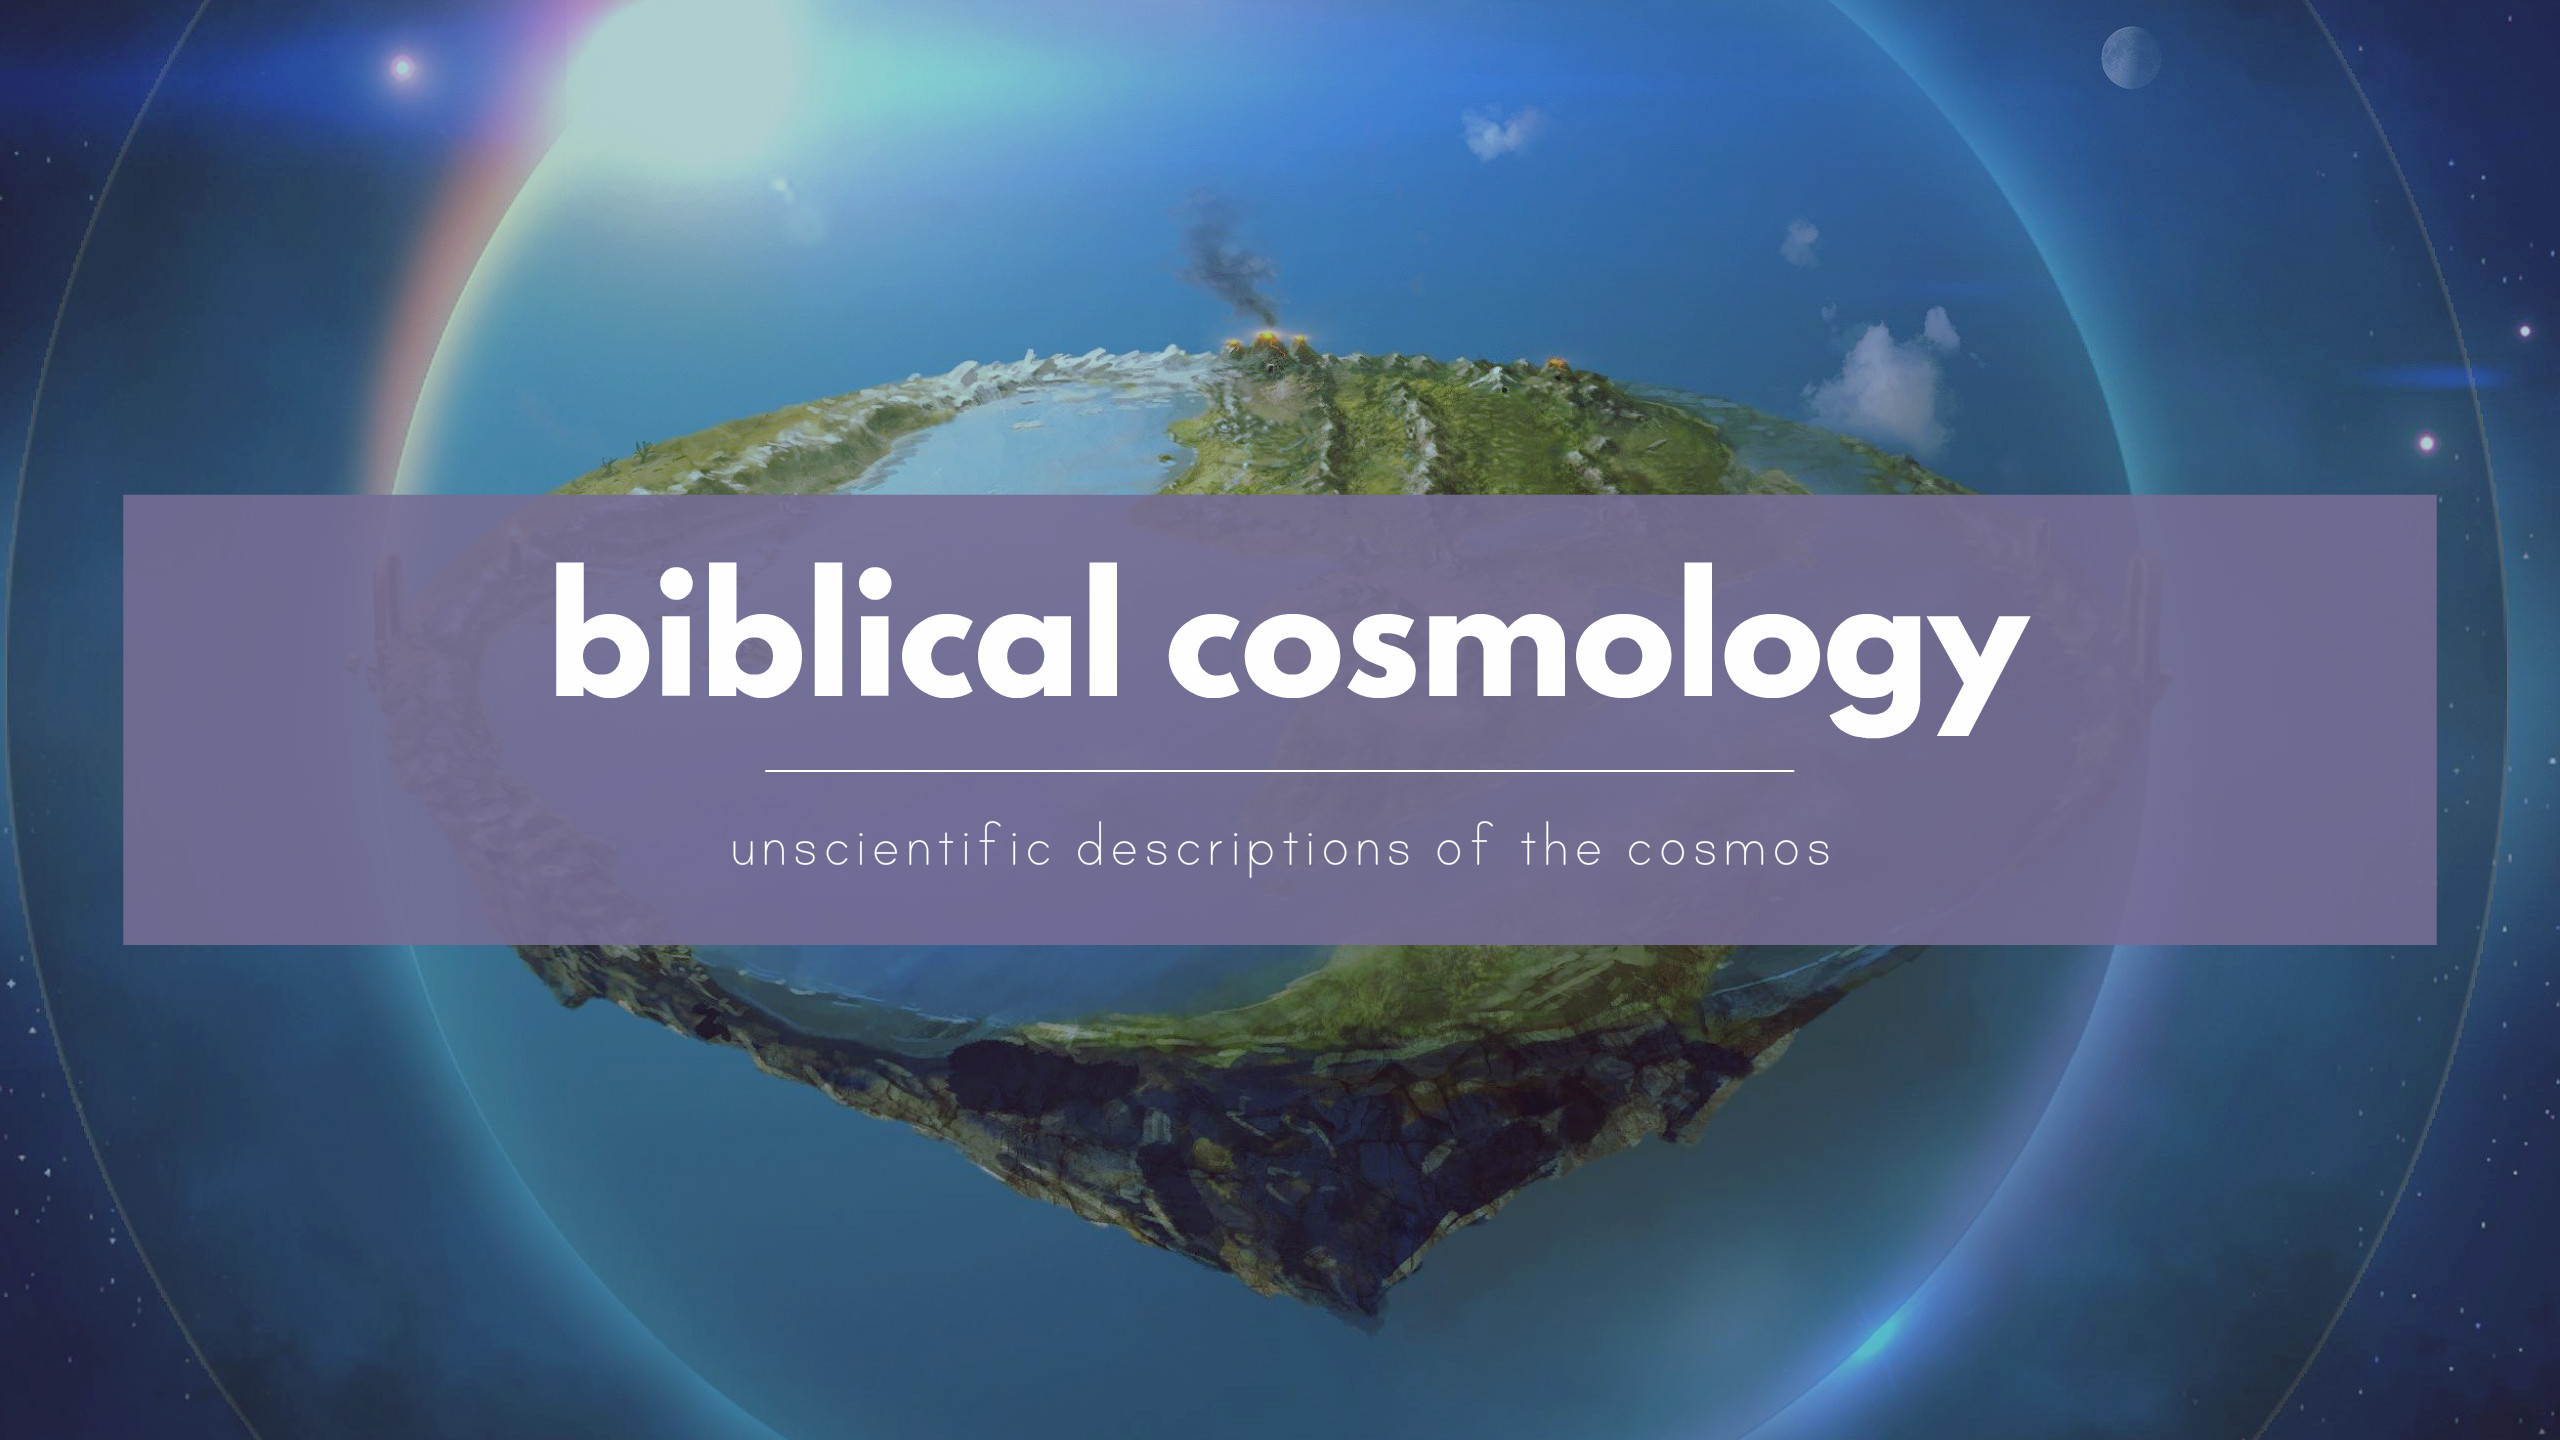 Bible science ancient hebrew cosmology the reluctant skeptic bible science ancient hebrew cosmology publicscrutiny Image collections